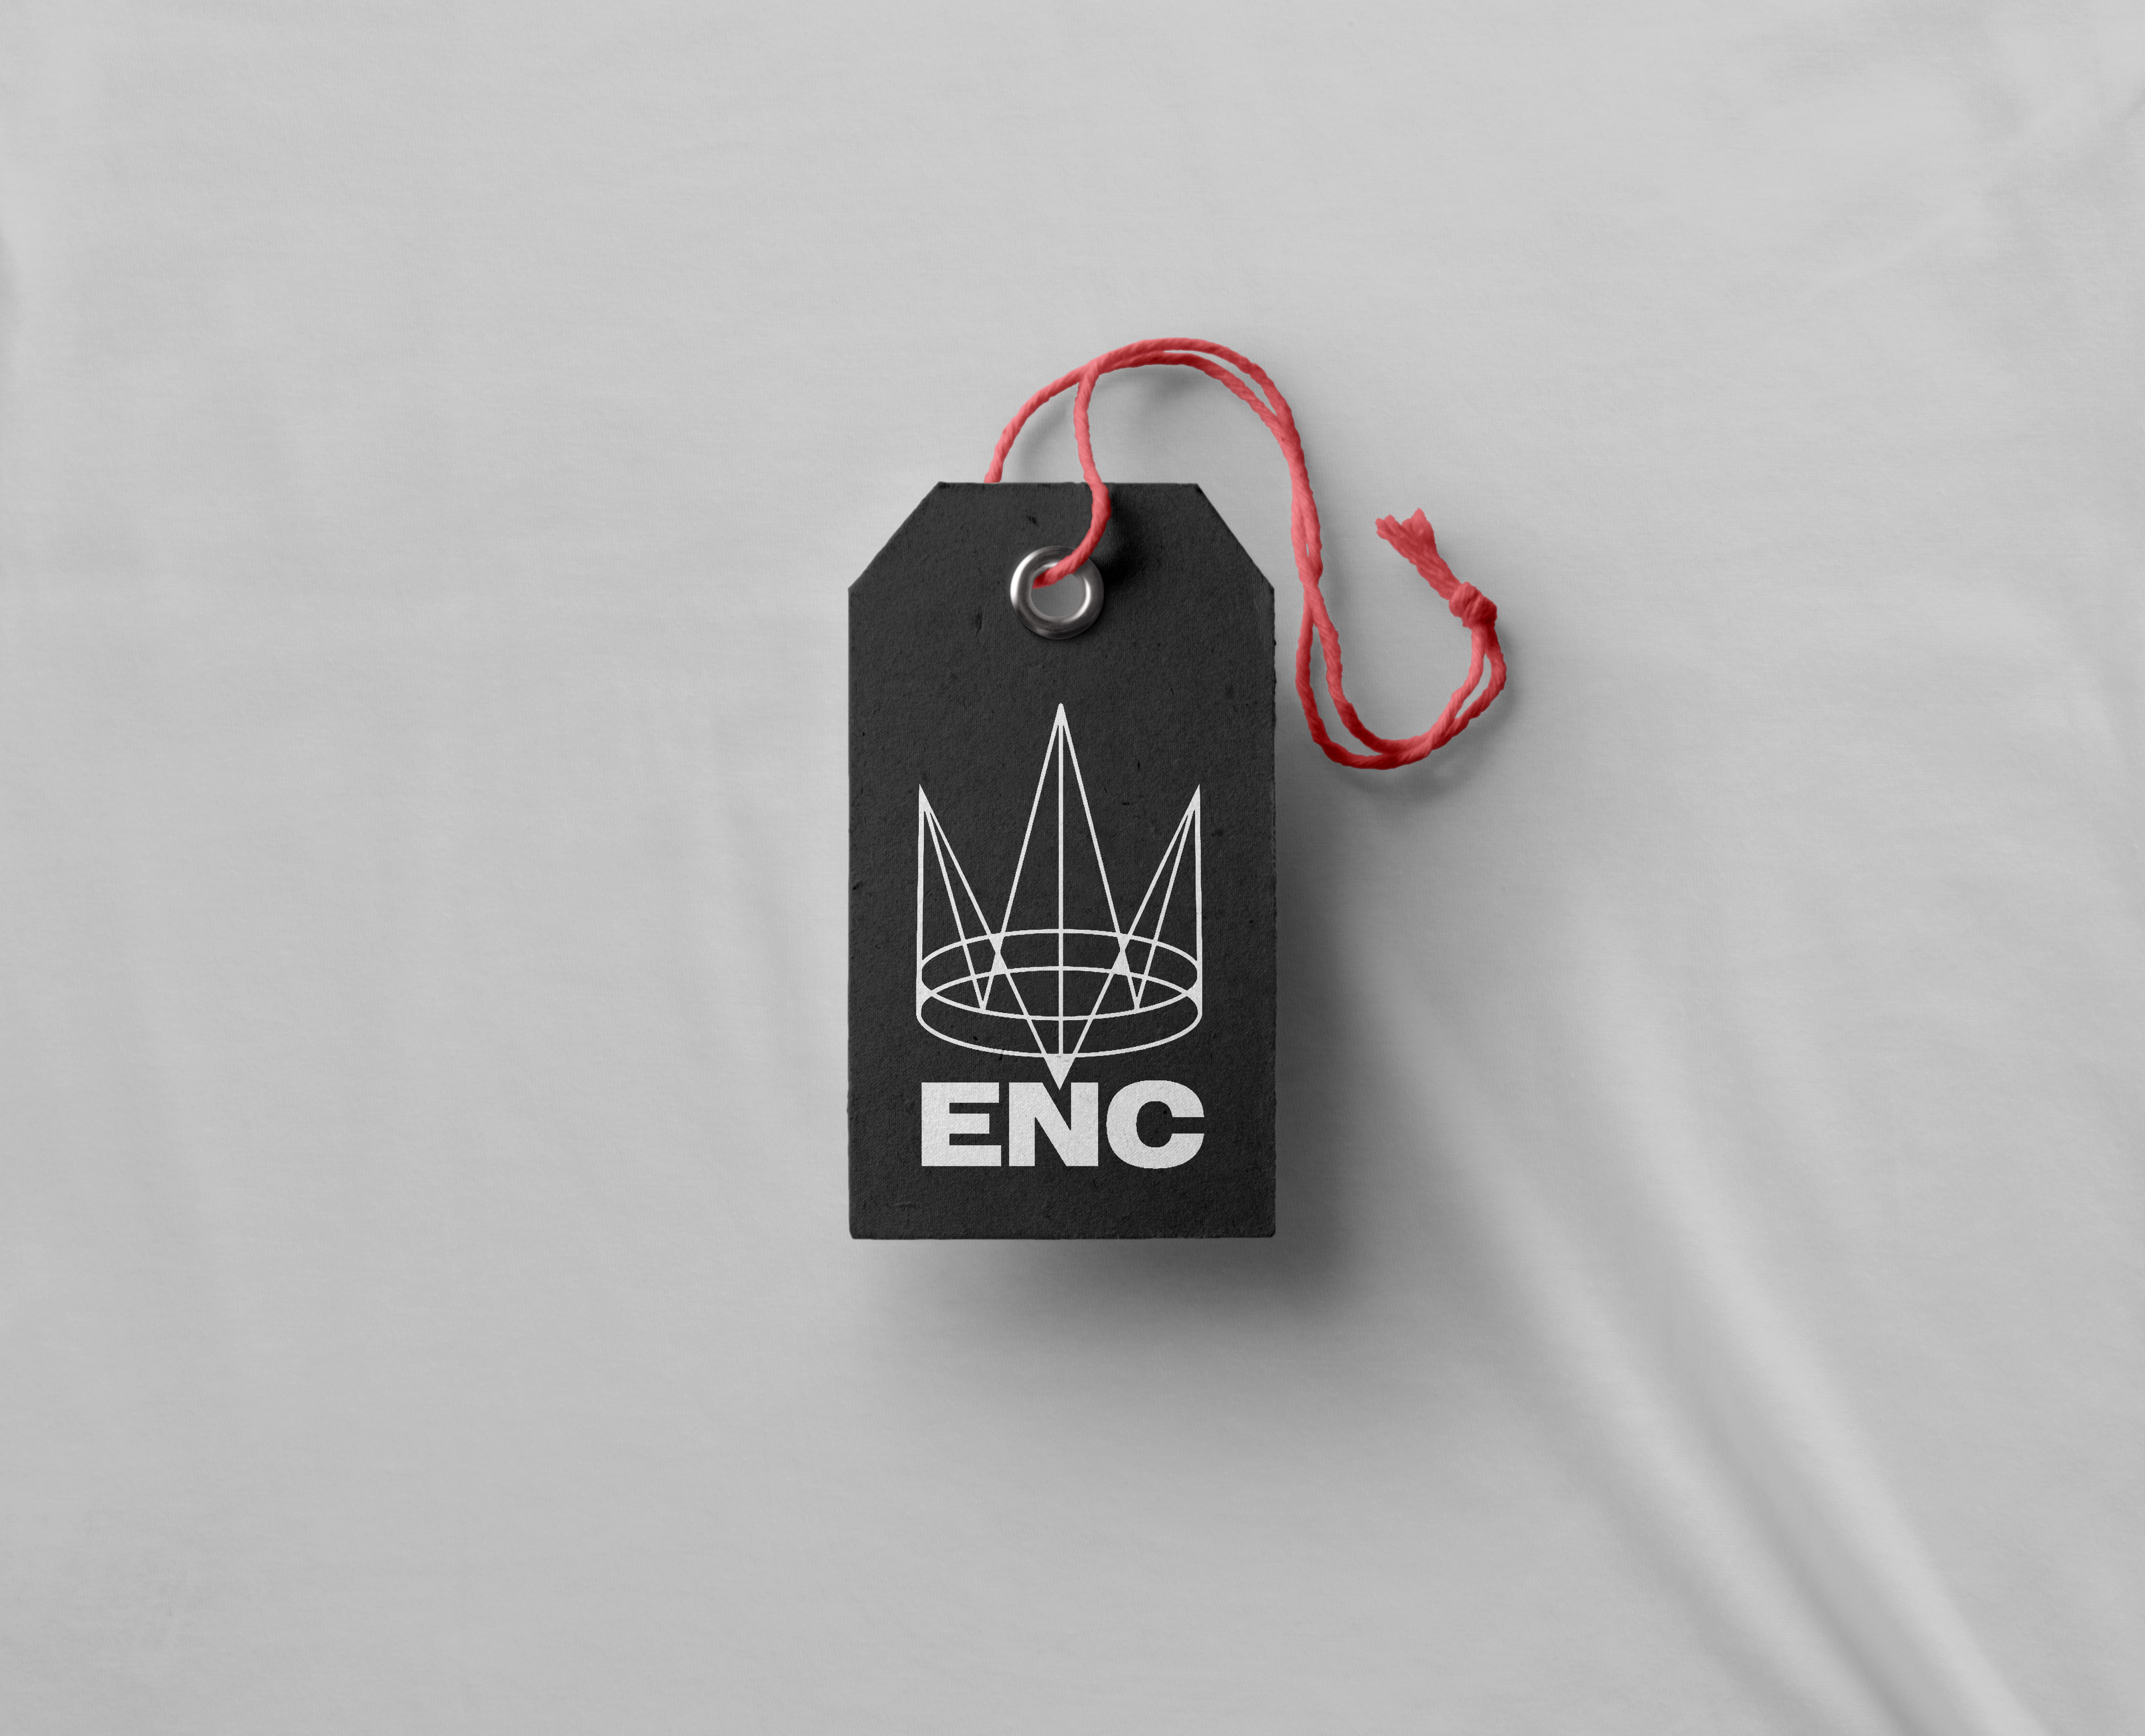 ENC clothing tag (2014)